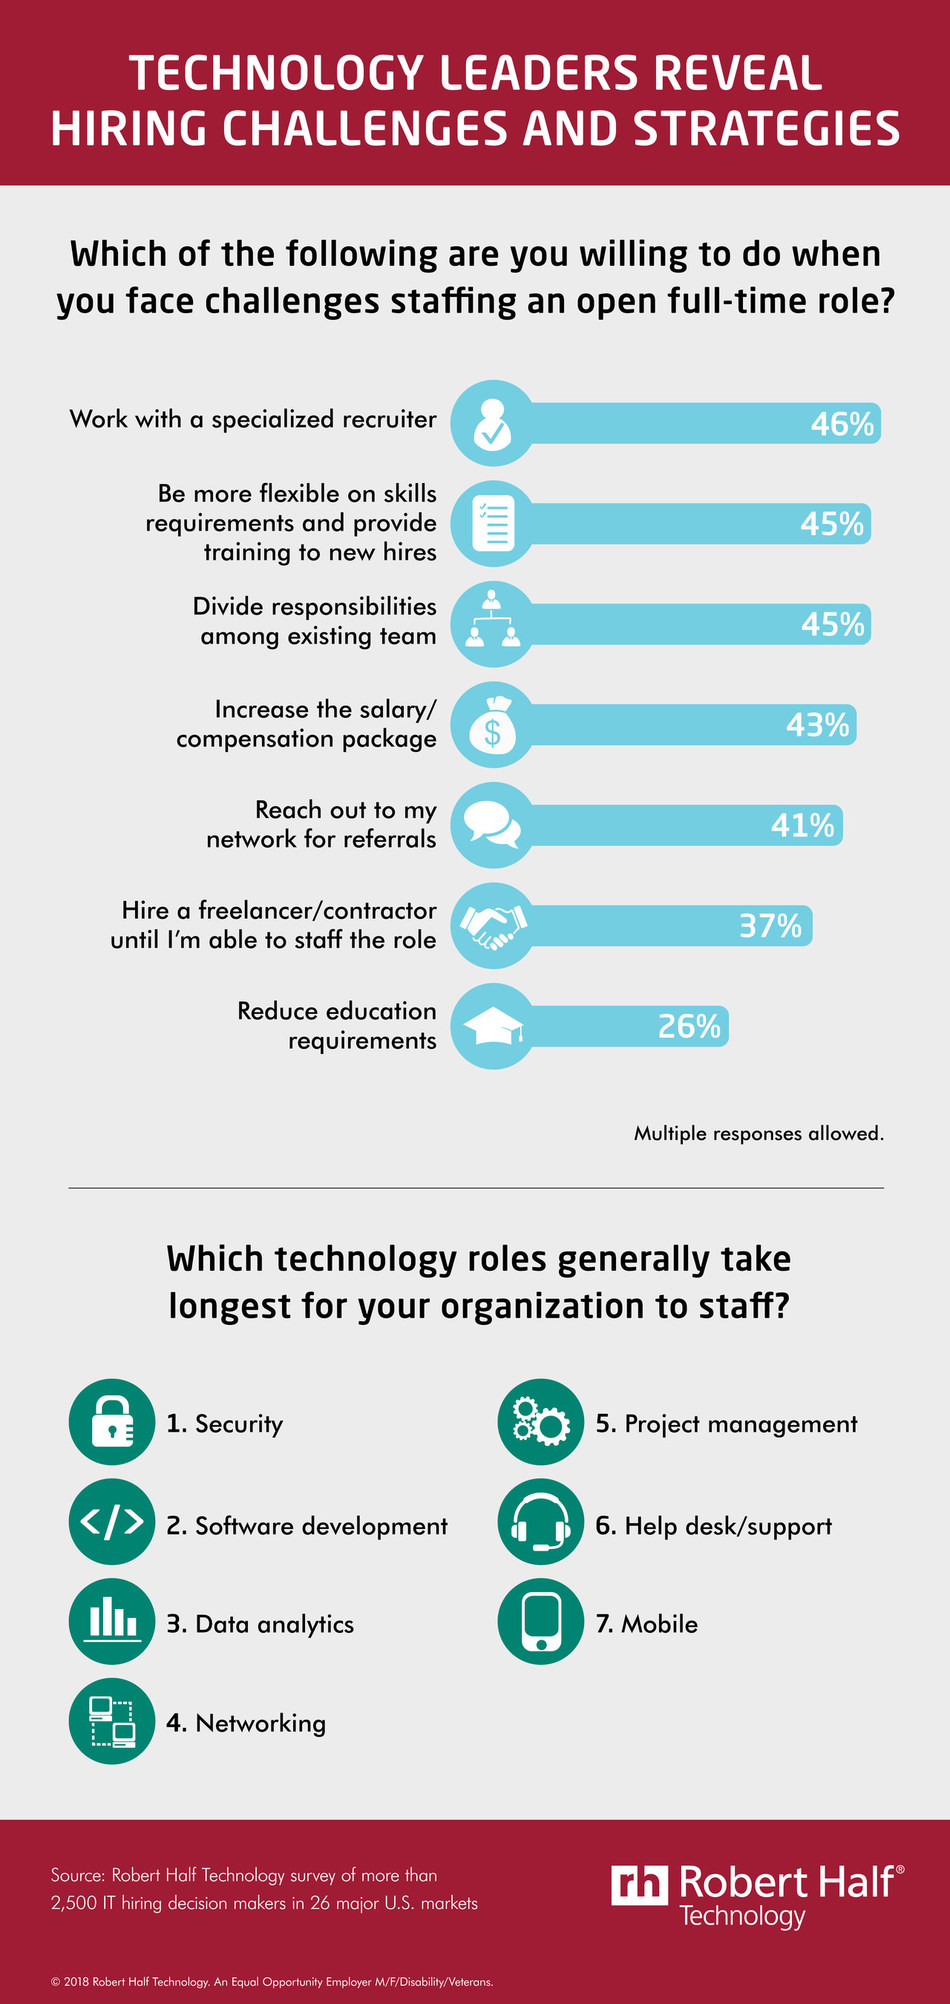 Unique hiring strategies by technology leaders.